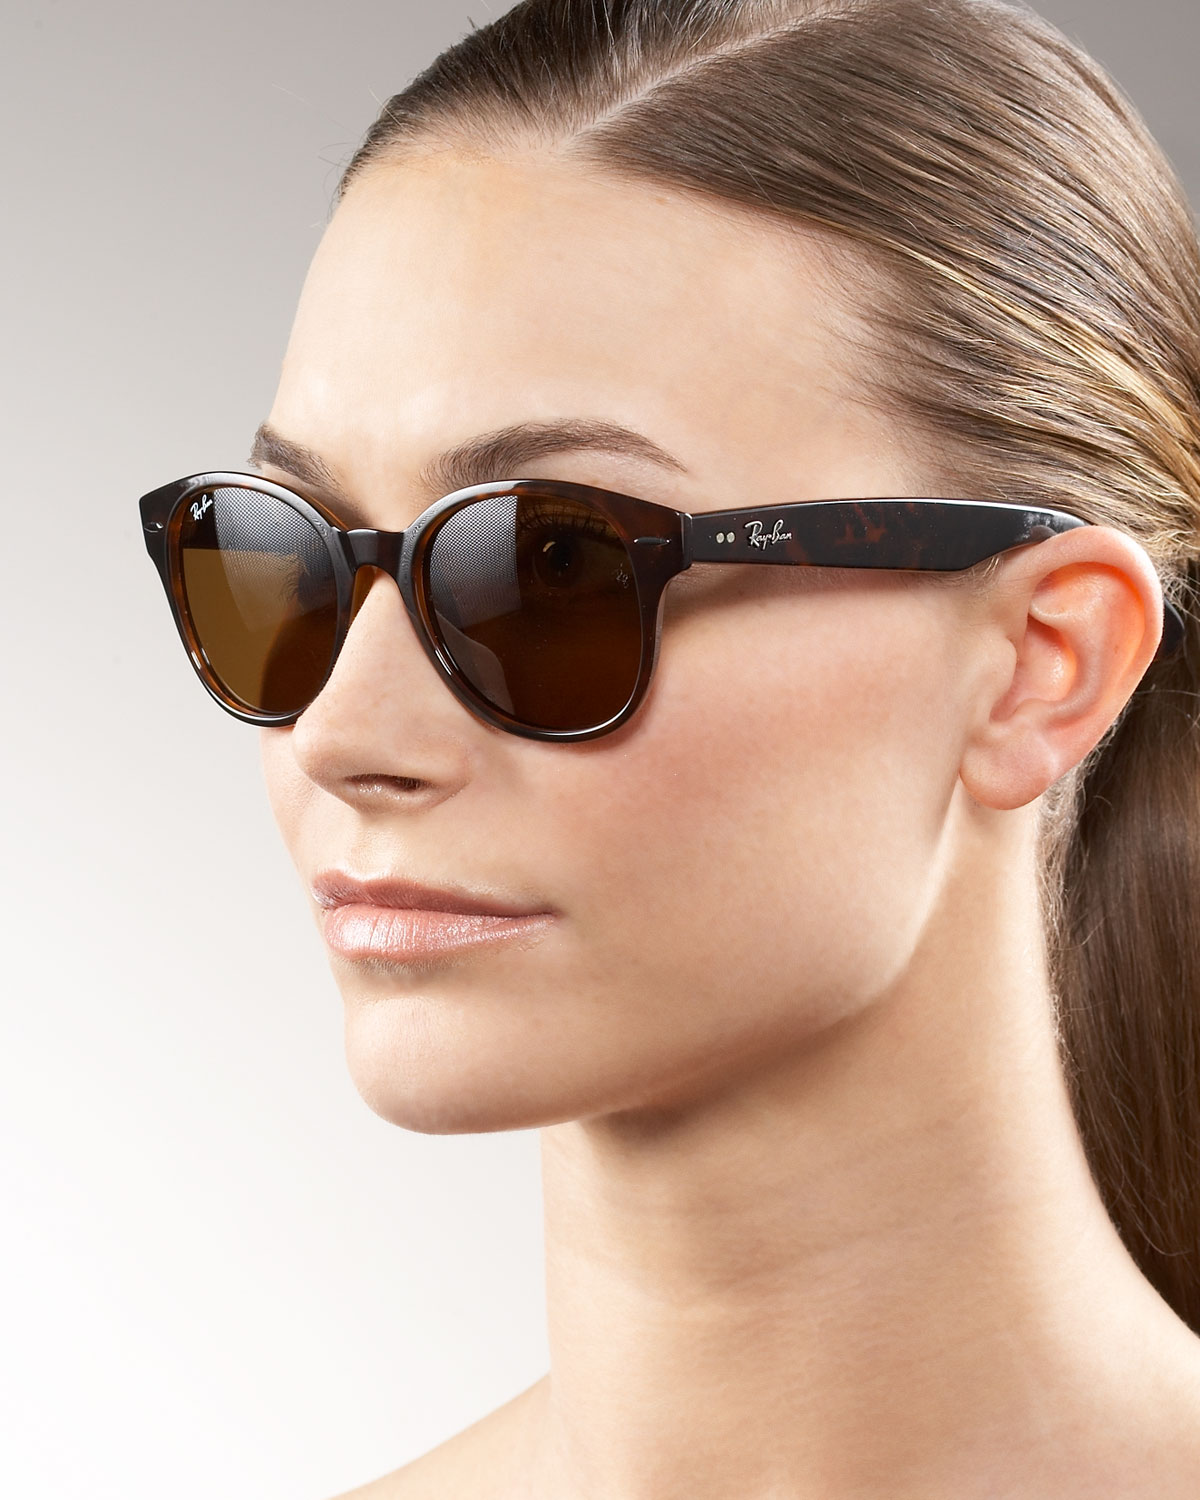 Ray Bans Womens Glasses Frames For Face Shapes « Heritage ...